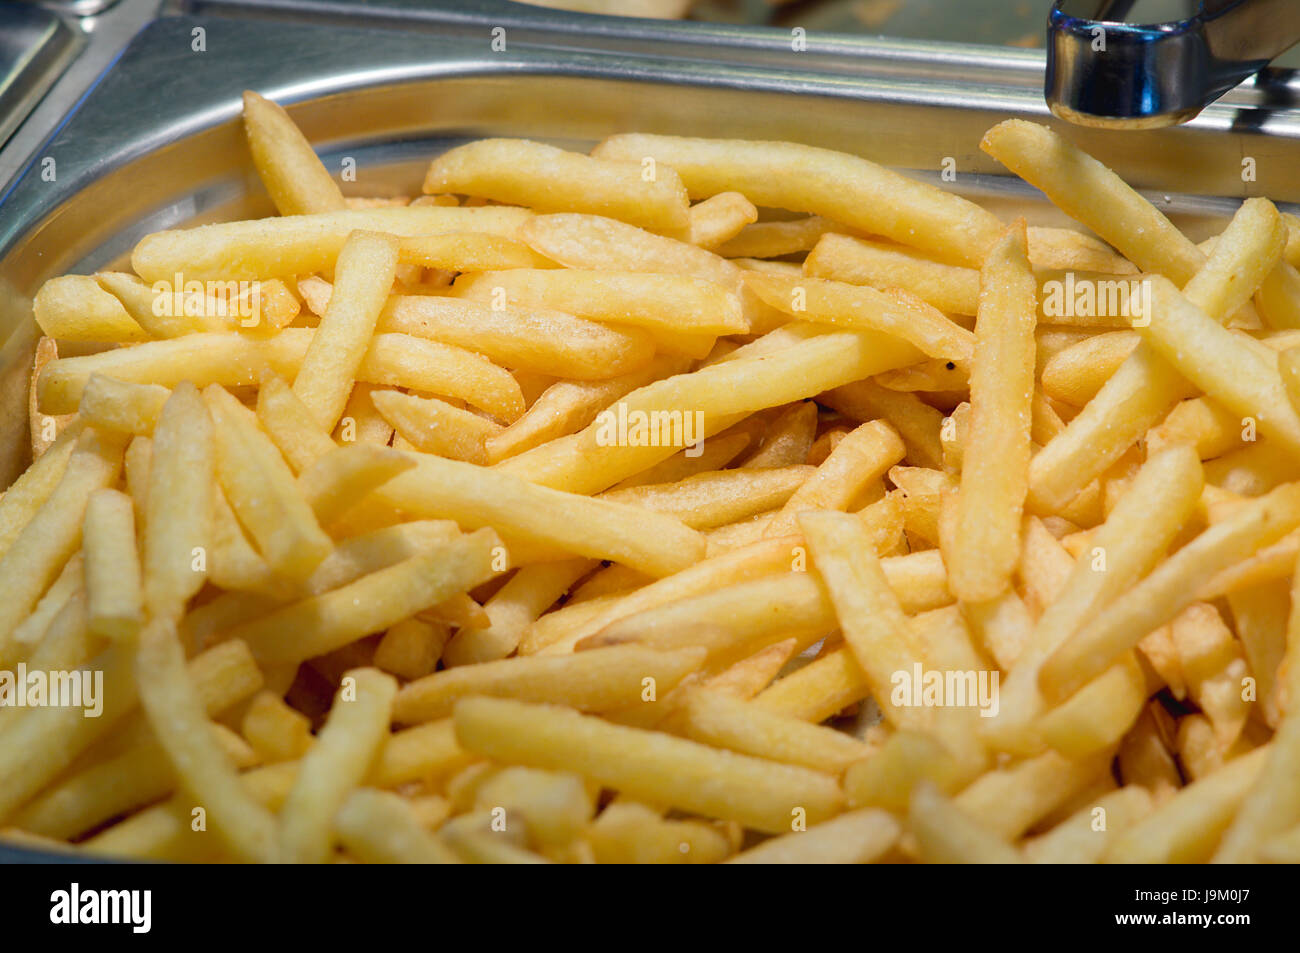 Golden fried potatoes fries on the counter of the restaurant fast food. Closeup. - Stock Image